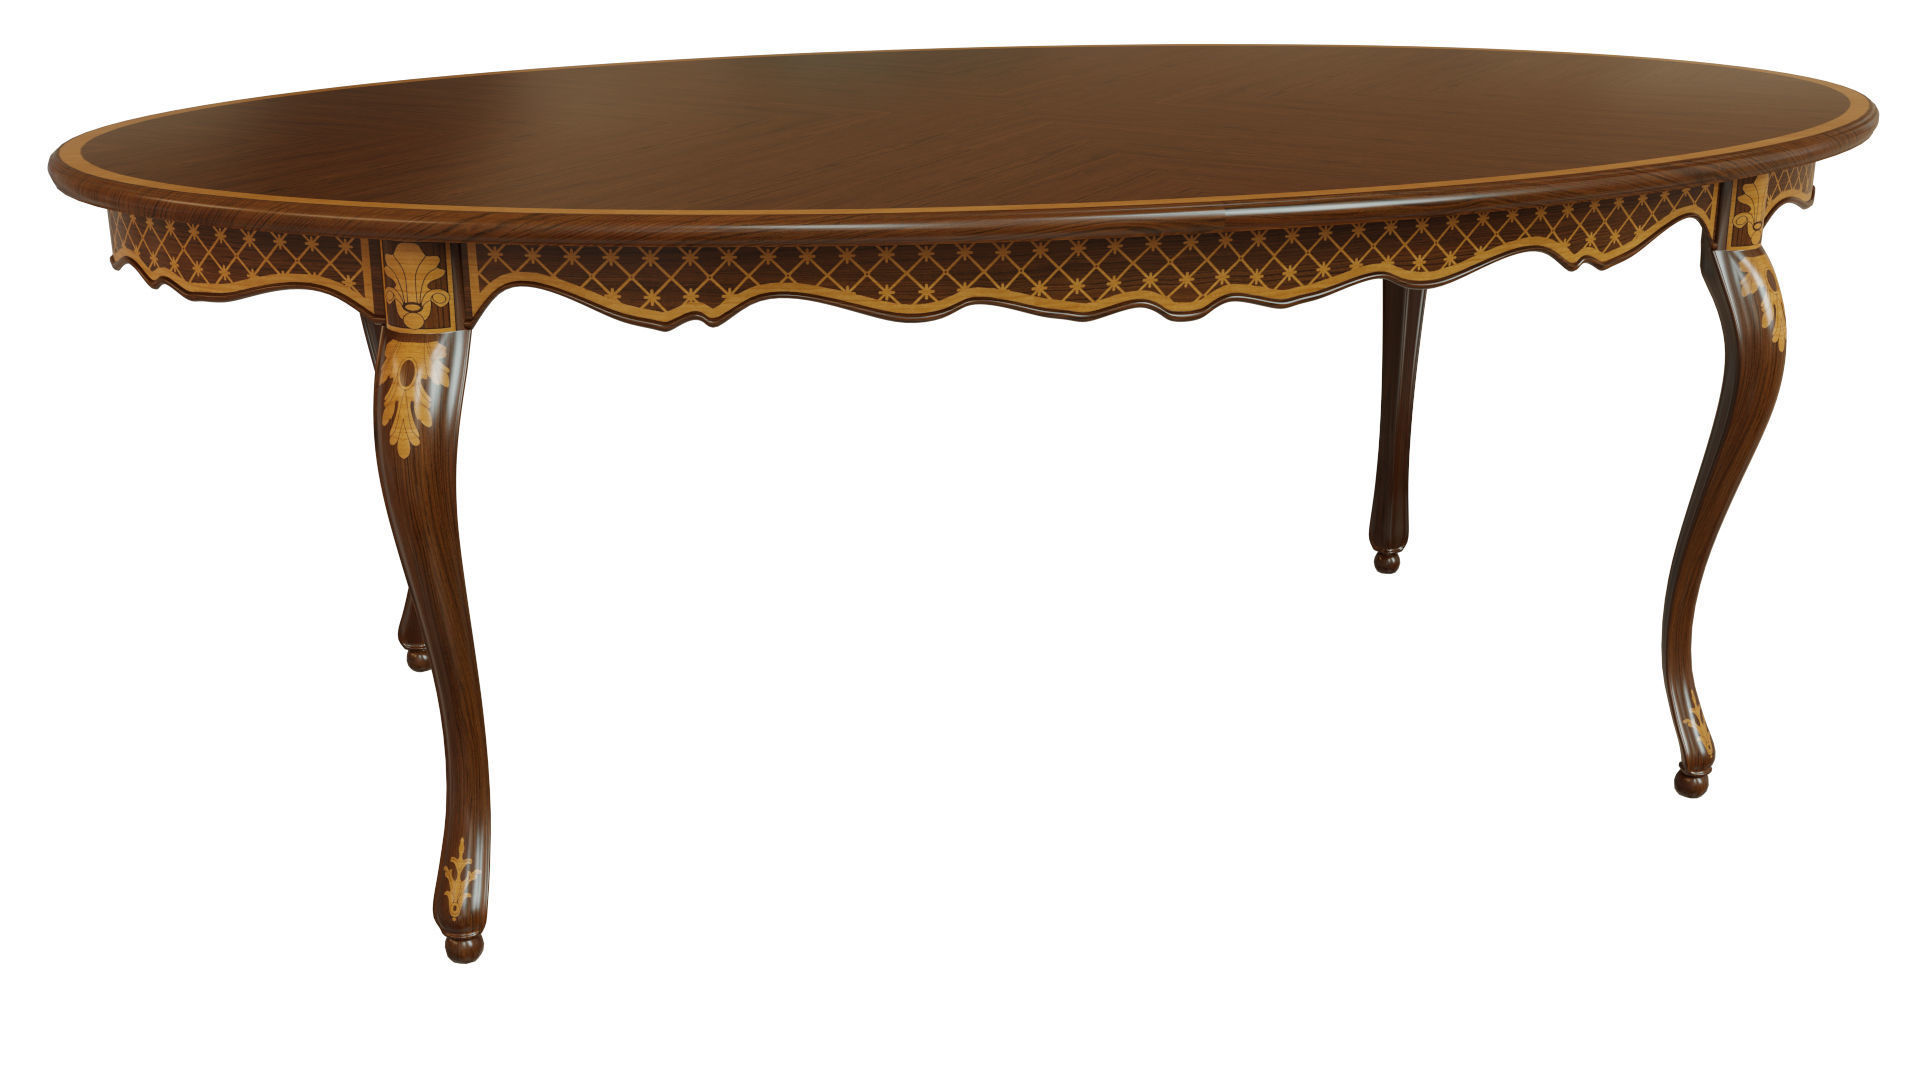 Classic table with inlaid veneer 2100